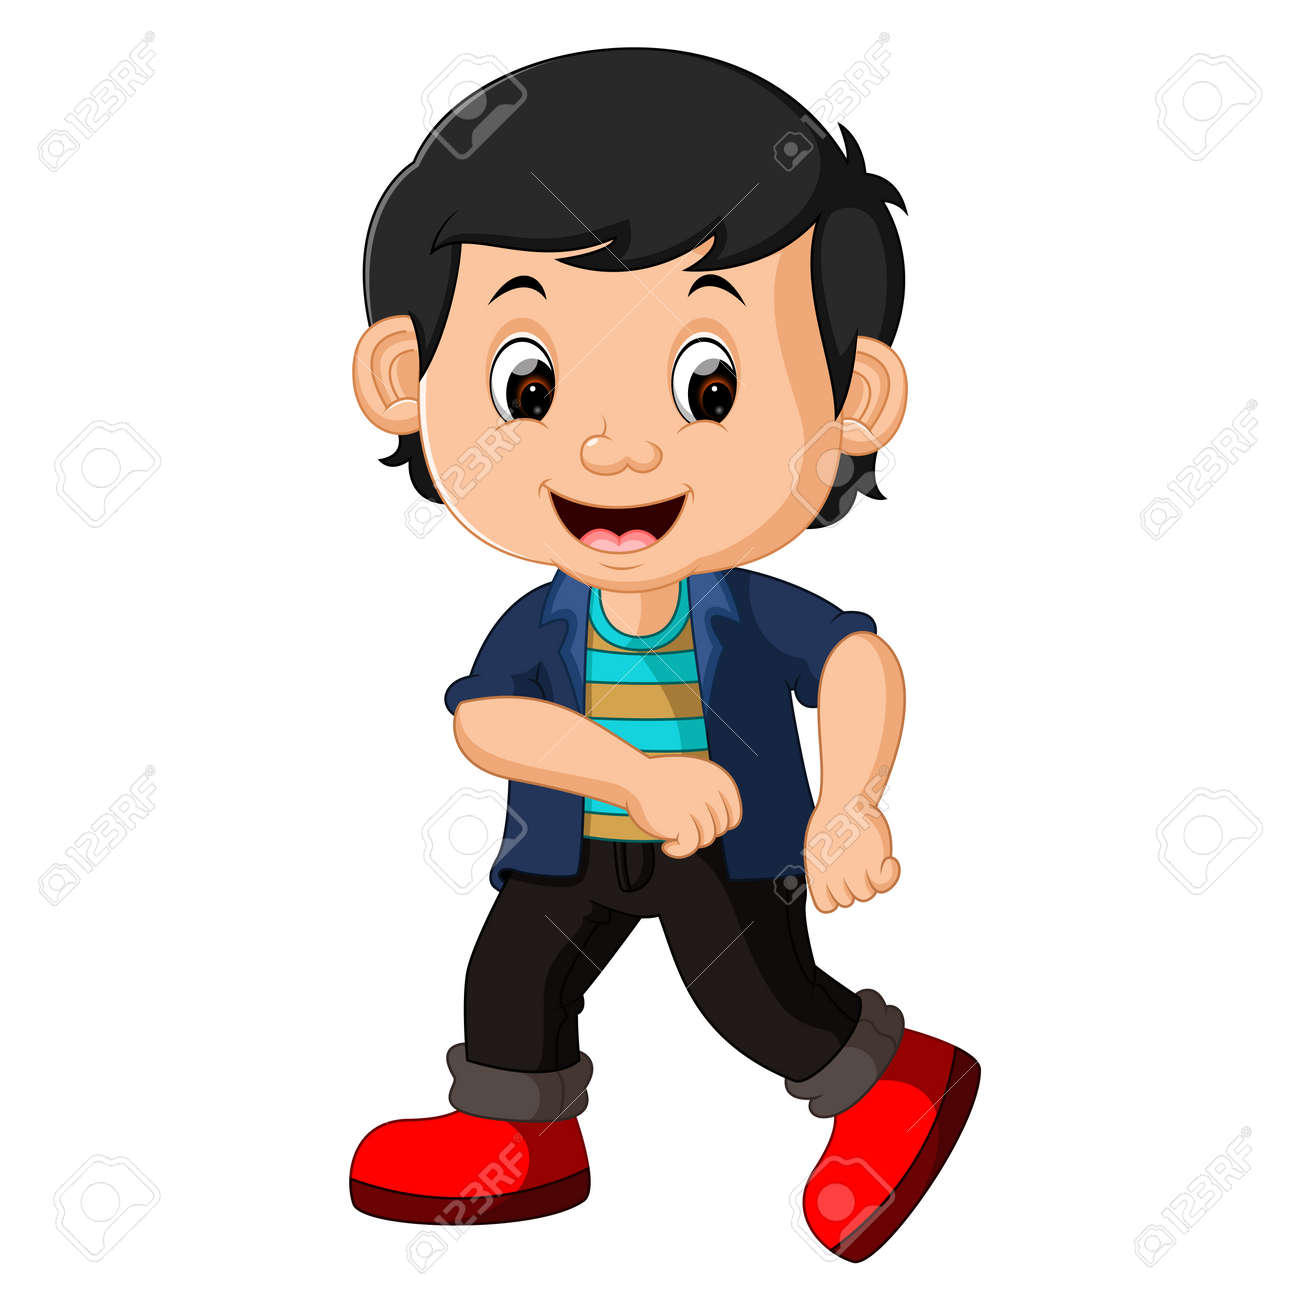 Cute Boy Cartoon Stock Photo Picture And Royalty Free Image Image